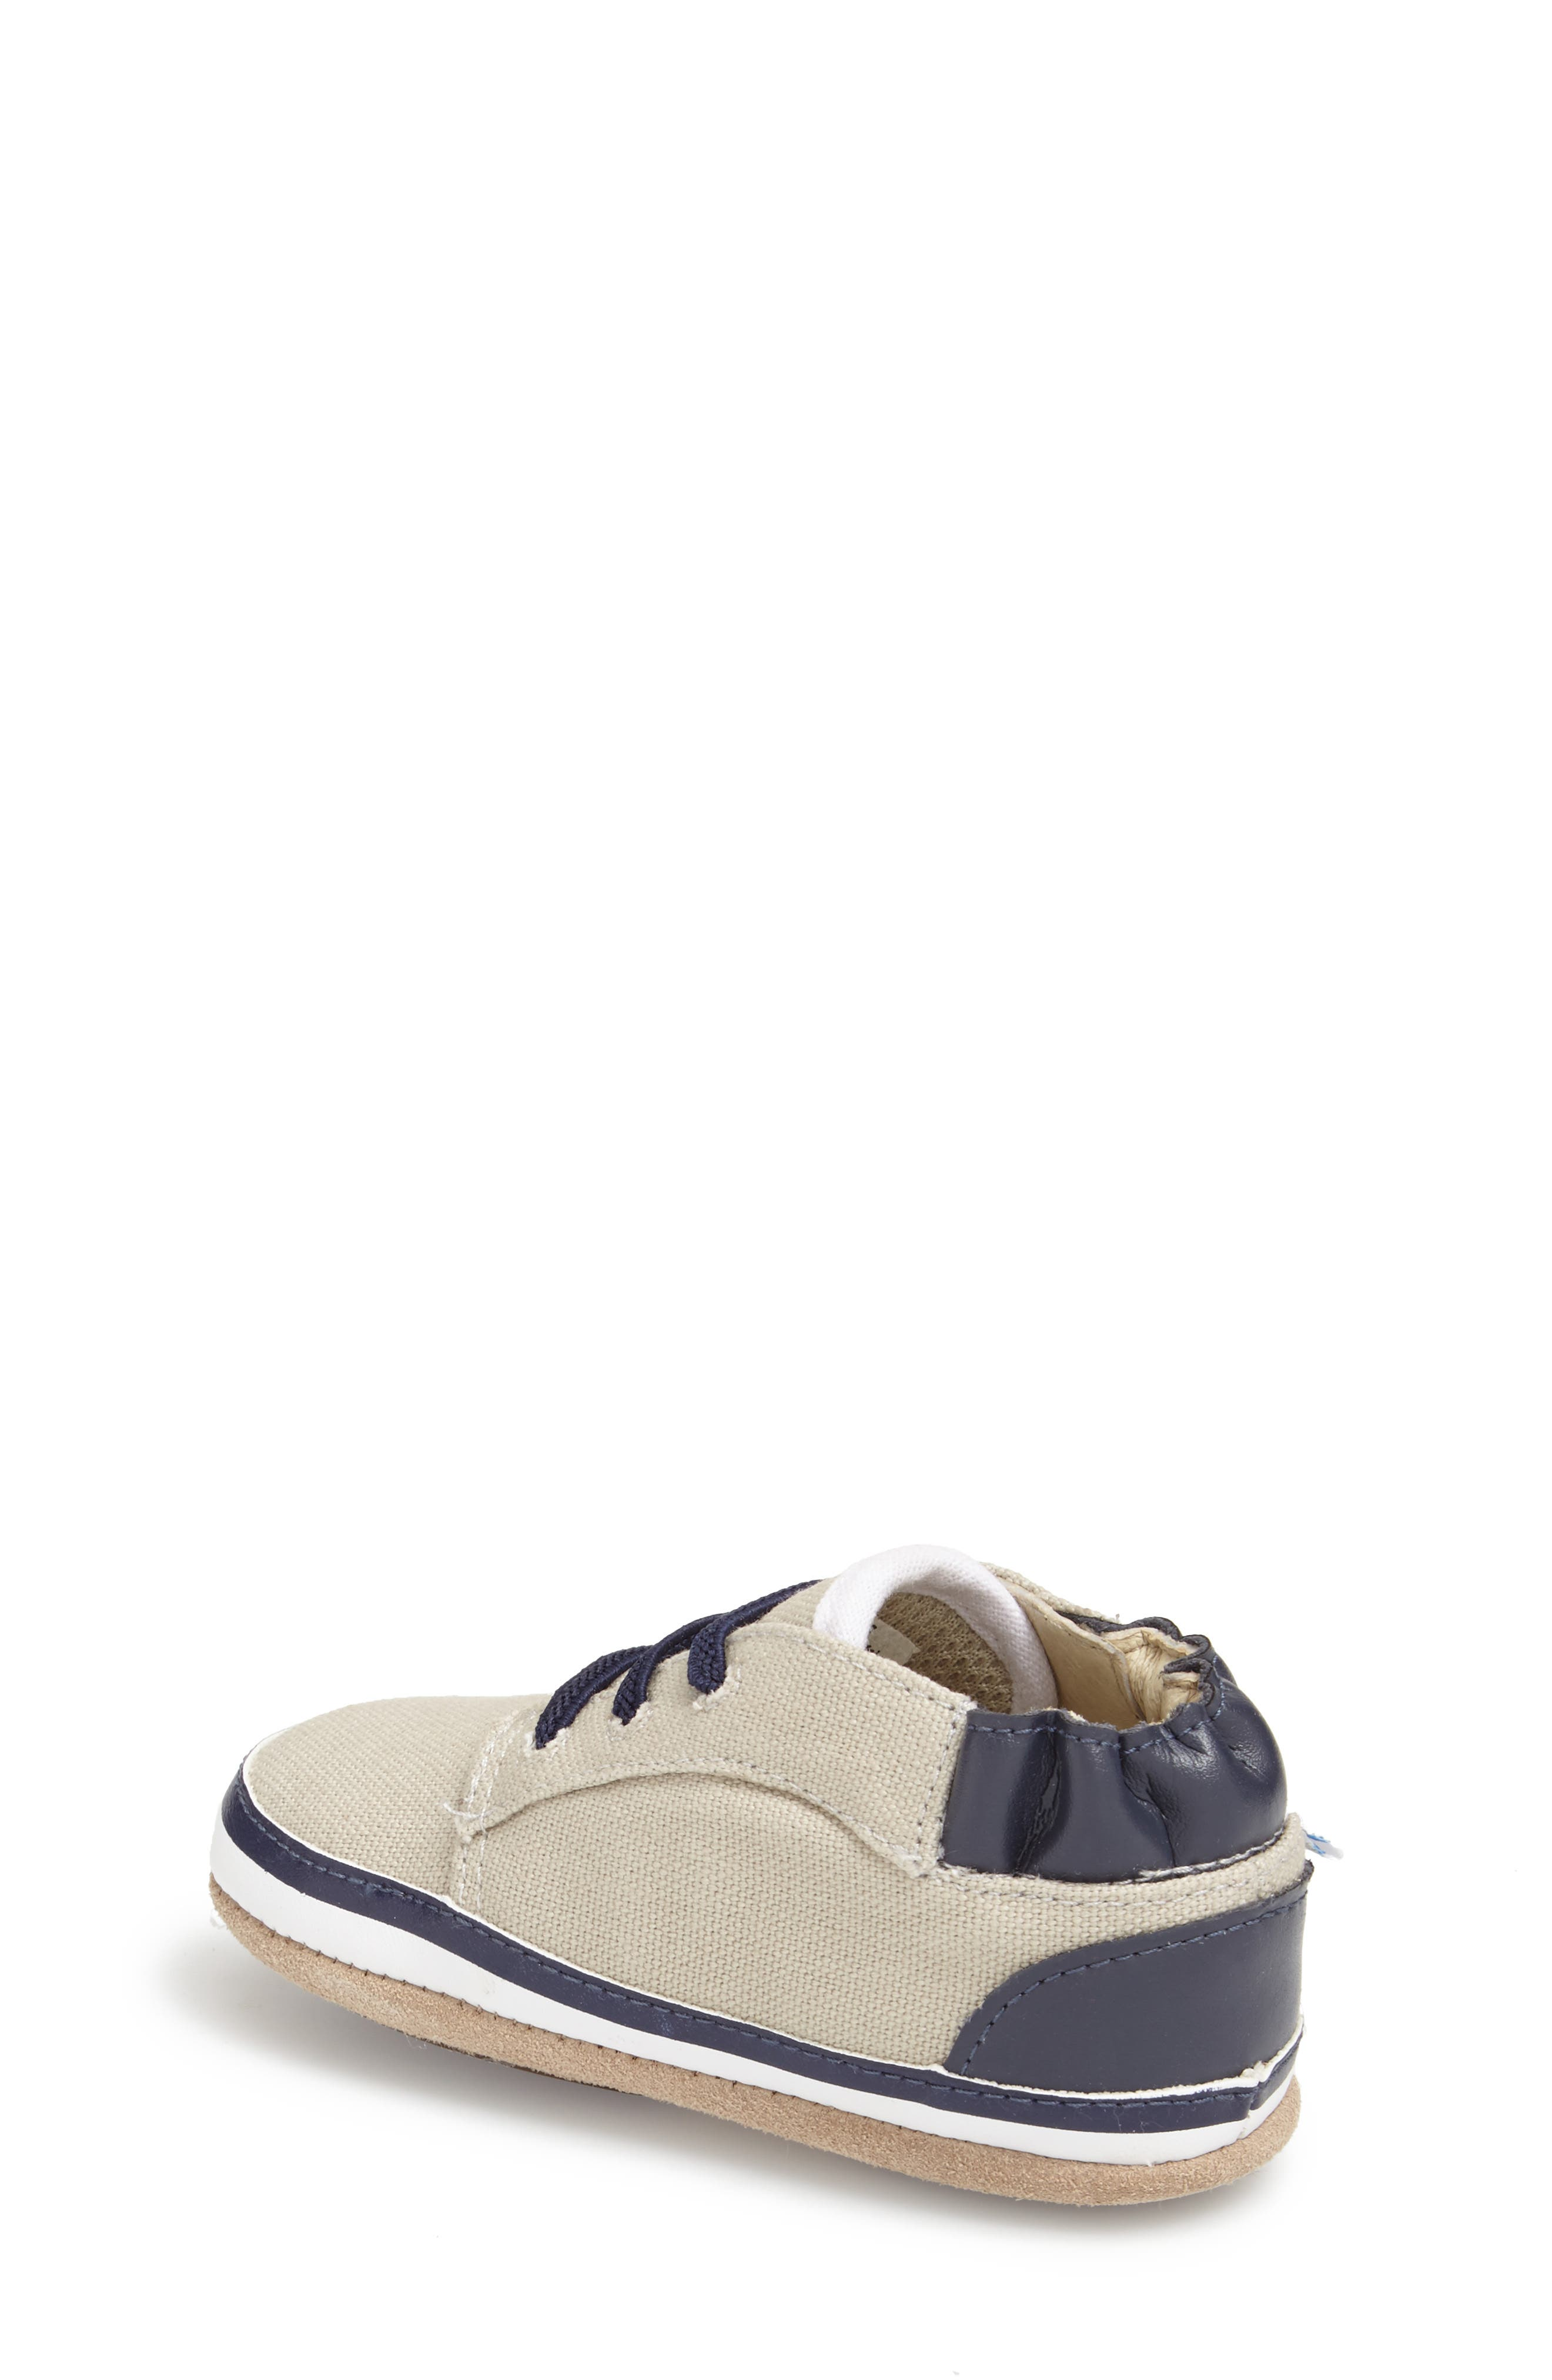 'Tyler Low Top' Crib Shoe,                             Alternate thumbnail 4, color,                             250